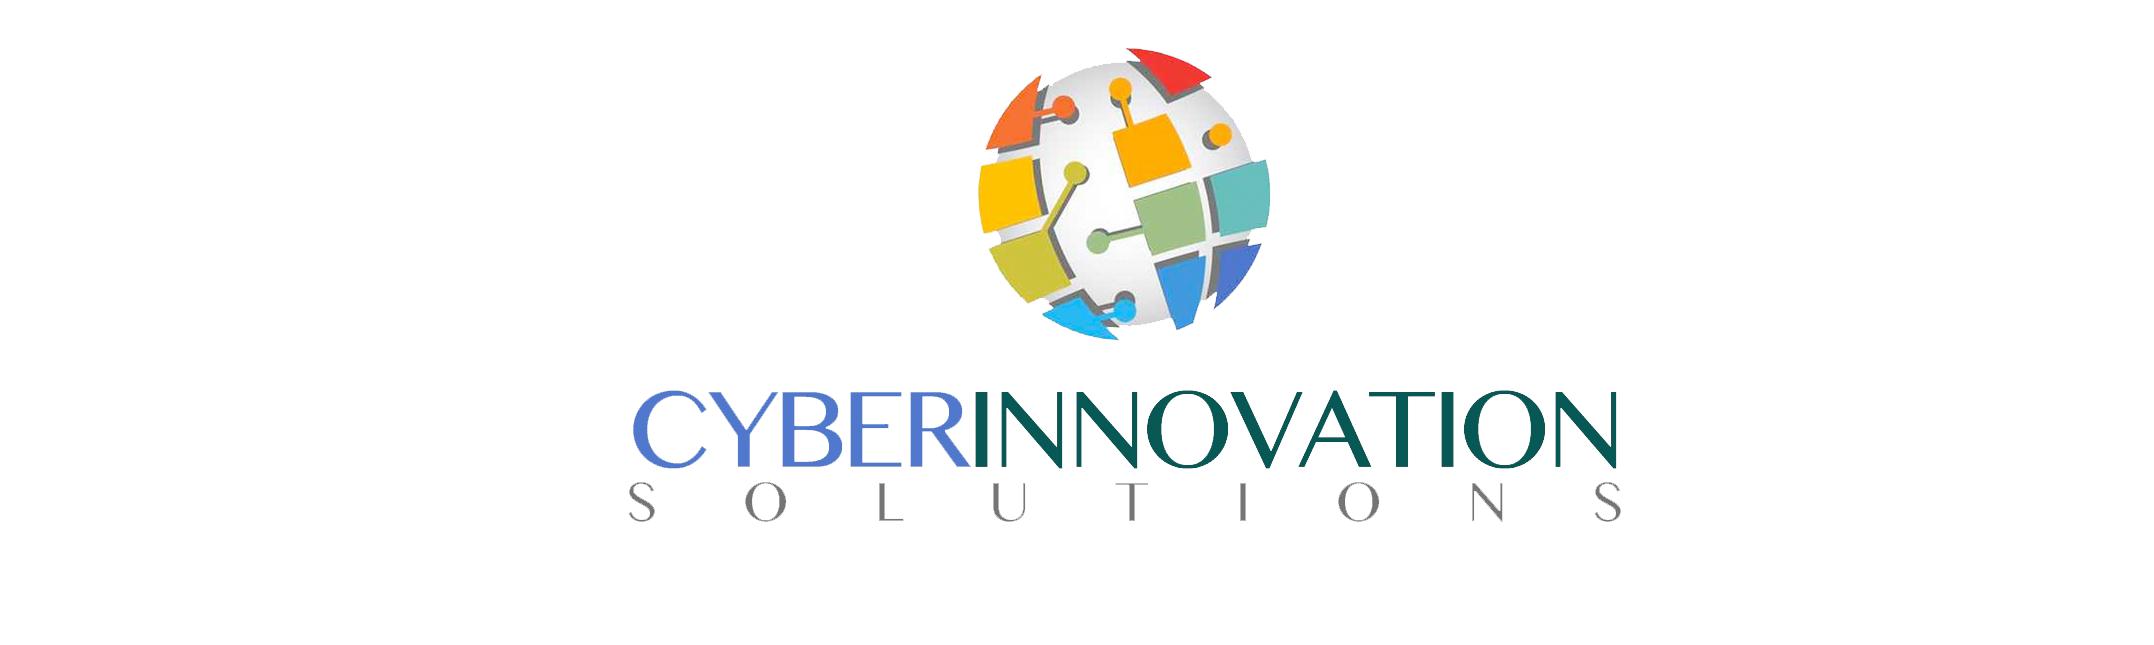 Cyber Innovation Solutions